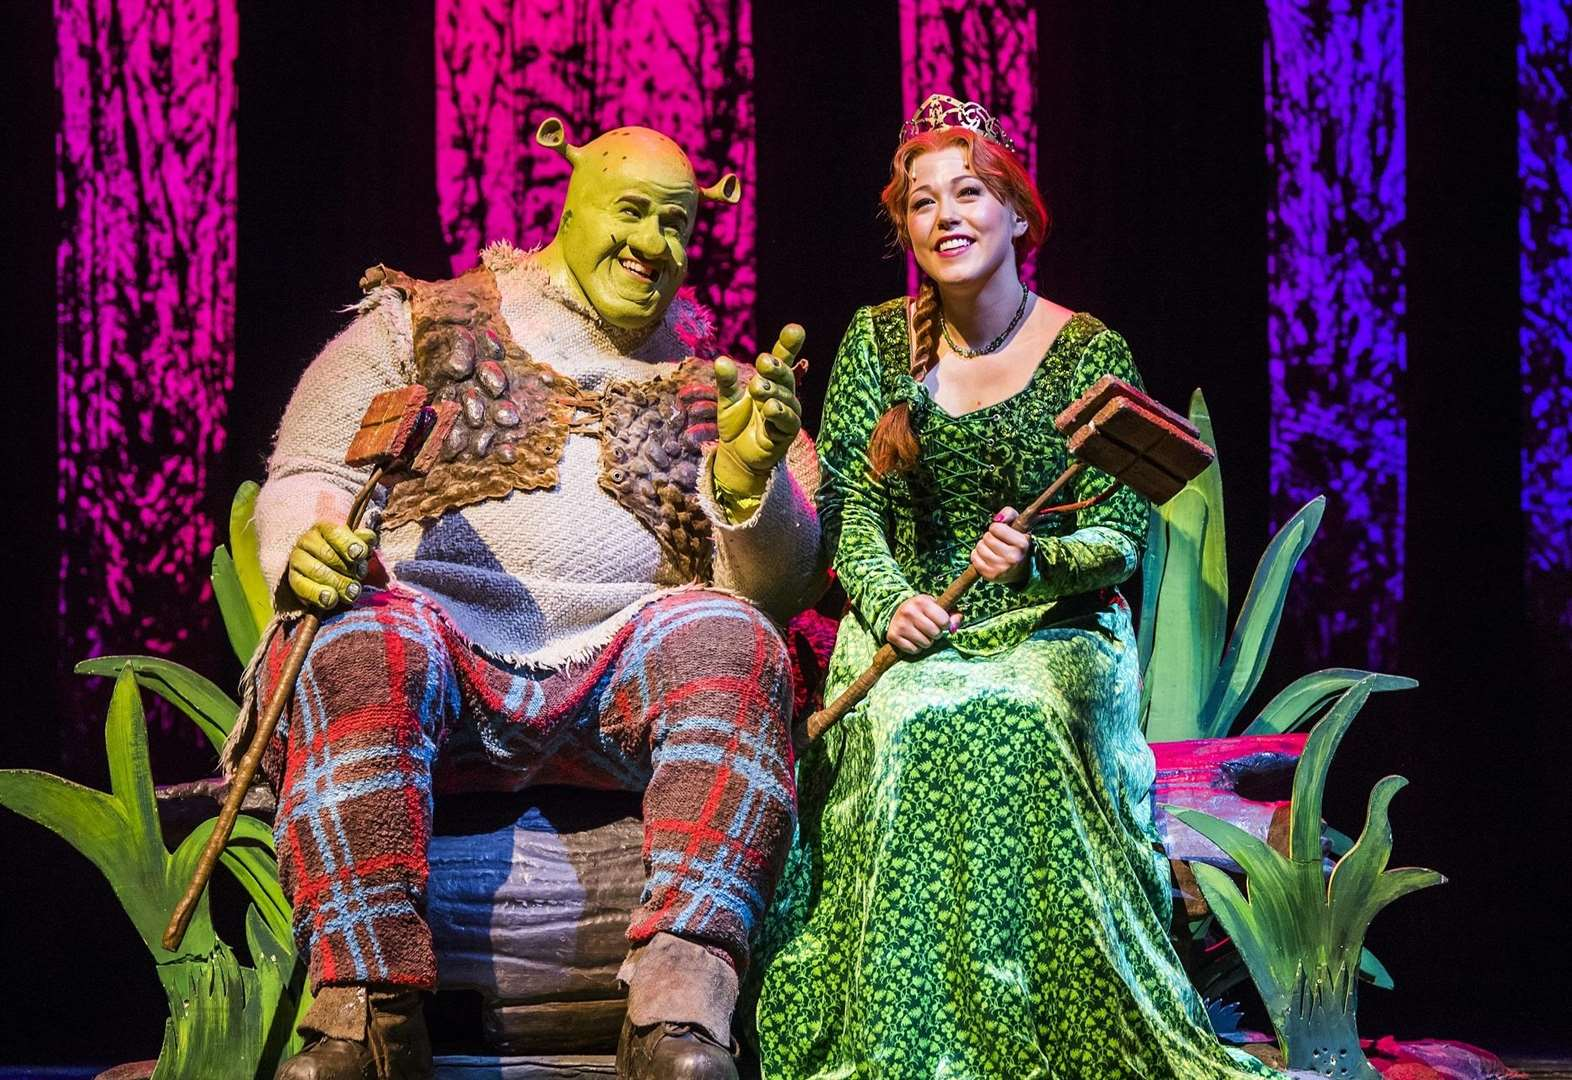 Shrek! The Musical: it's got layers